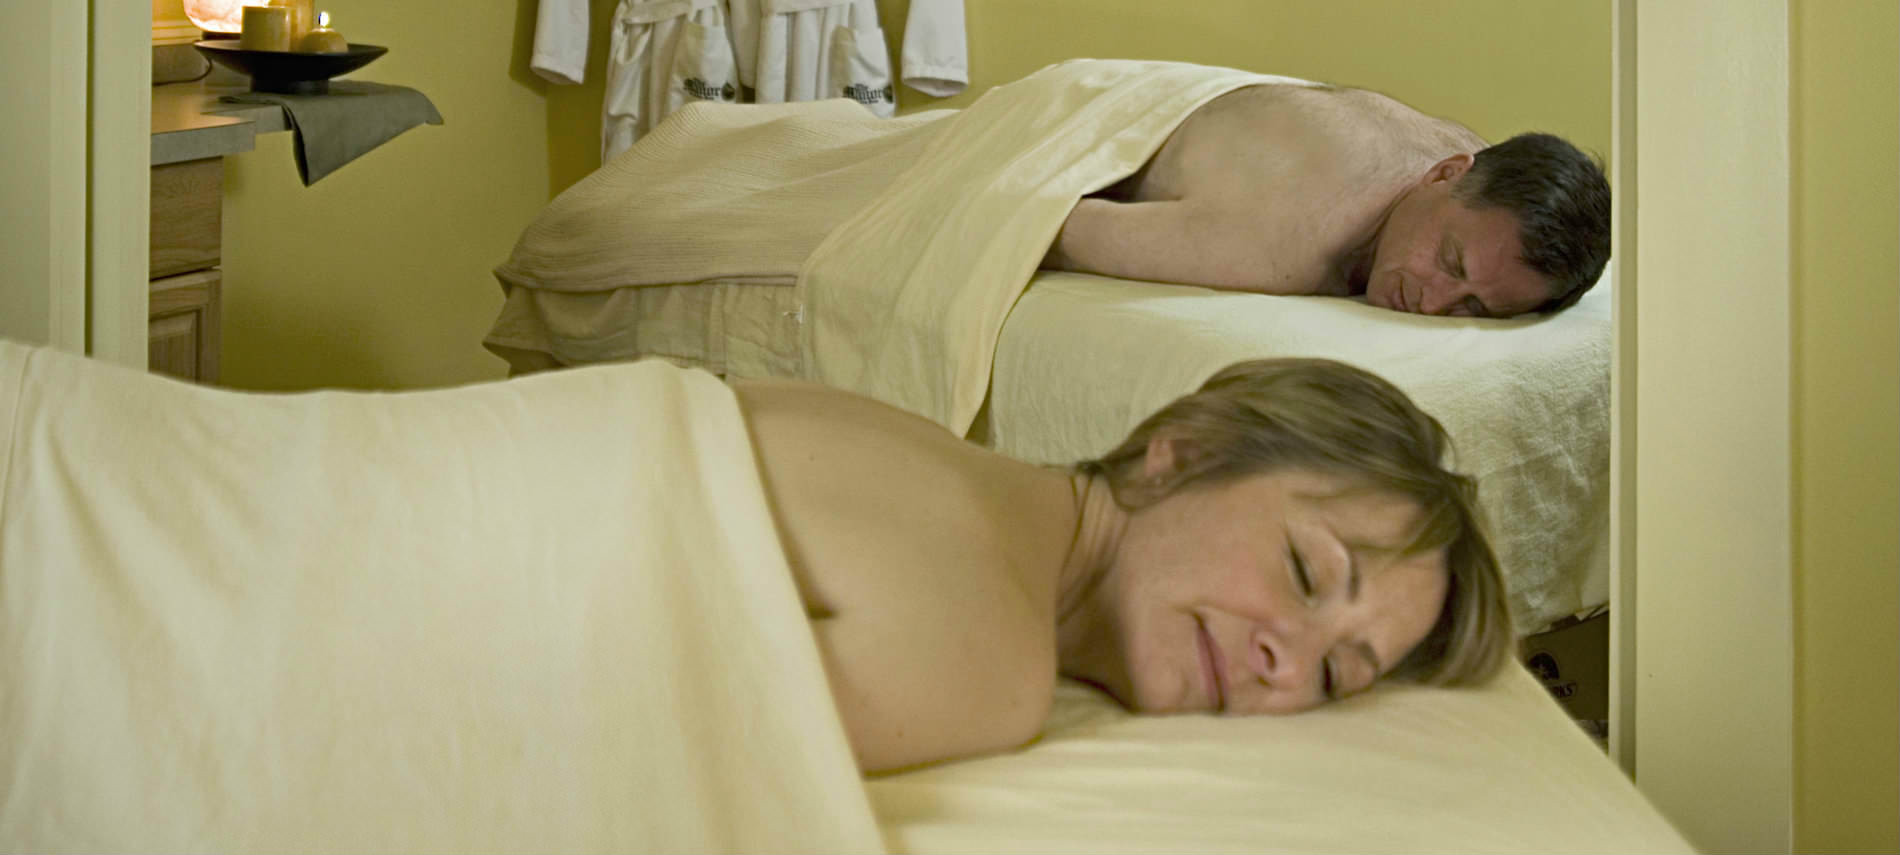 A mana nd woman covered with sheets relax on massage tables prior to a couples massage.